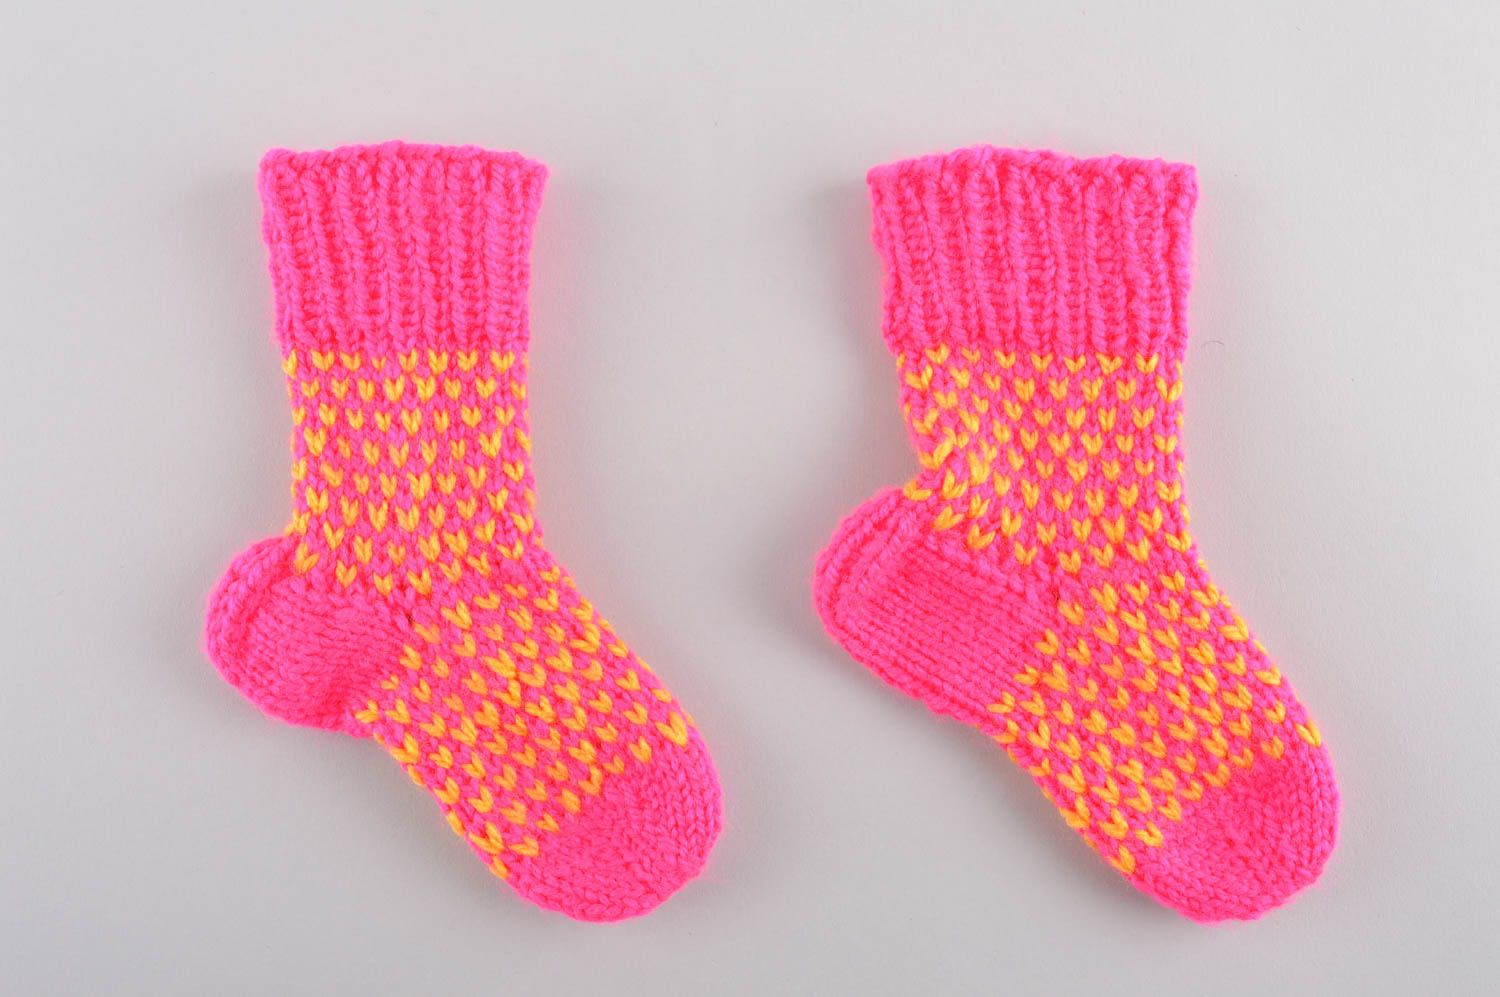 Handmade knitted baby socks winter socks winter accessories present for kid - MADEheart.com